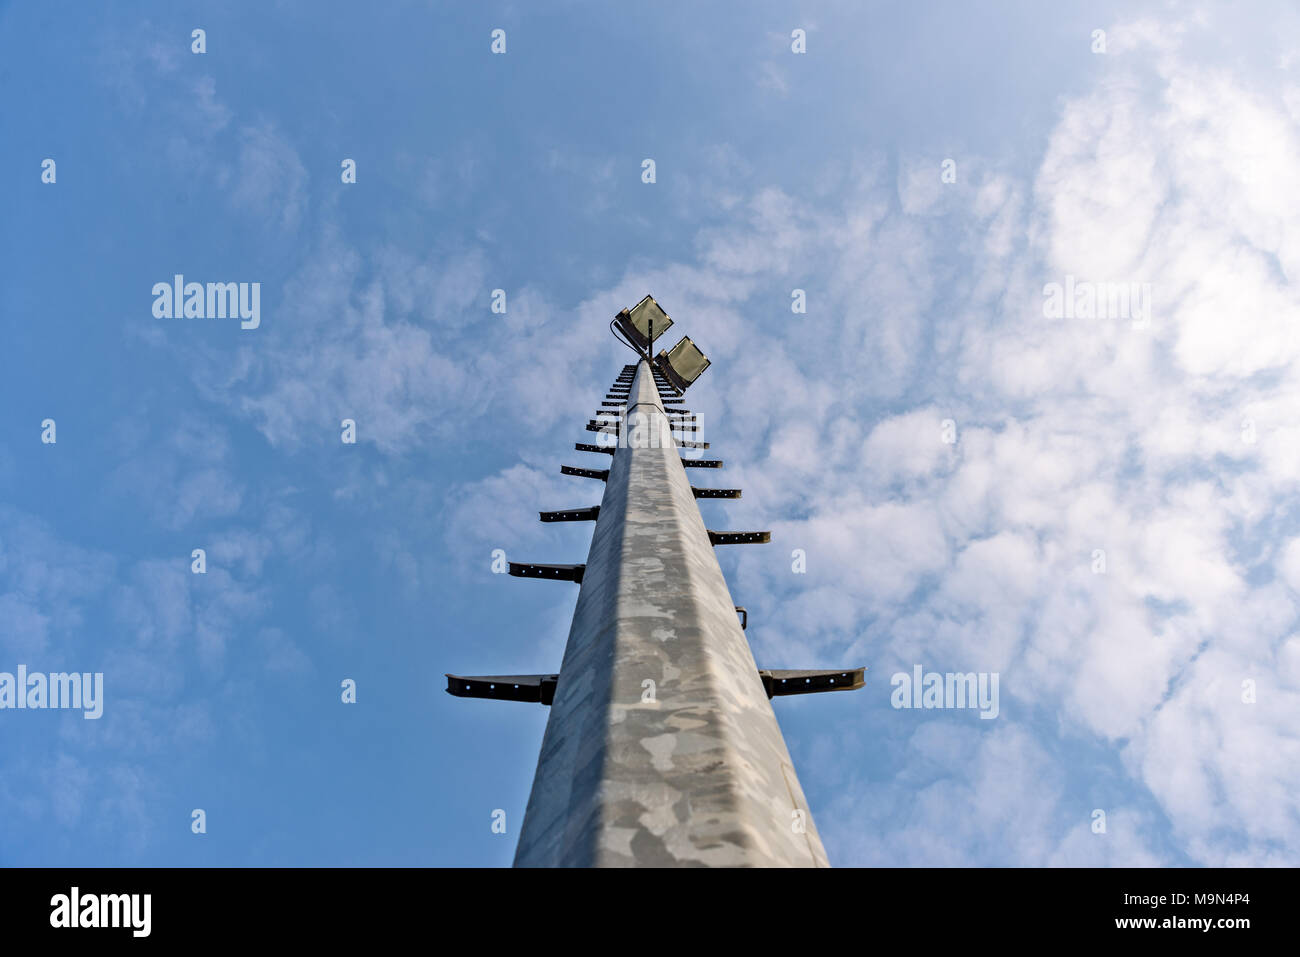 Floodlight from below for the soccer field - Stock Image